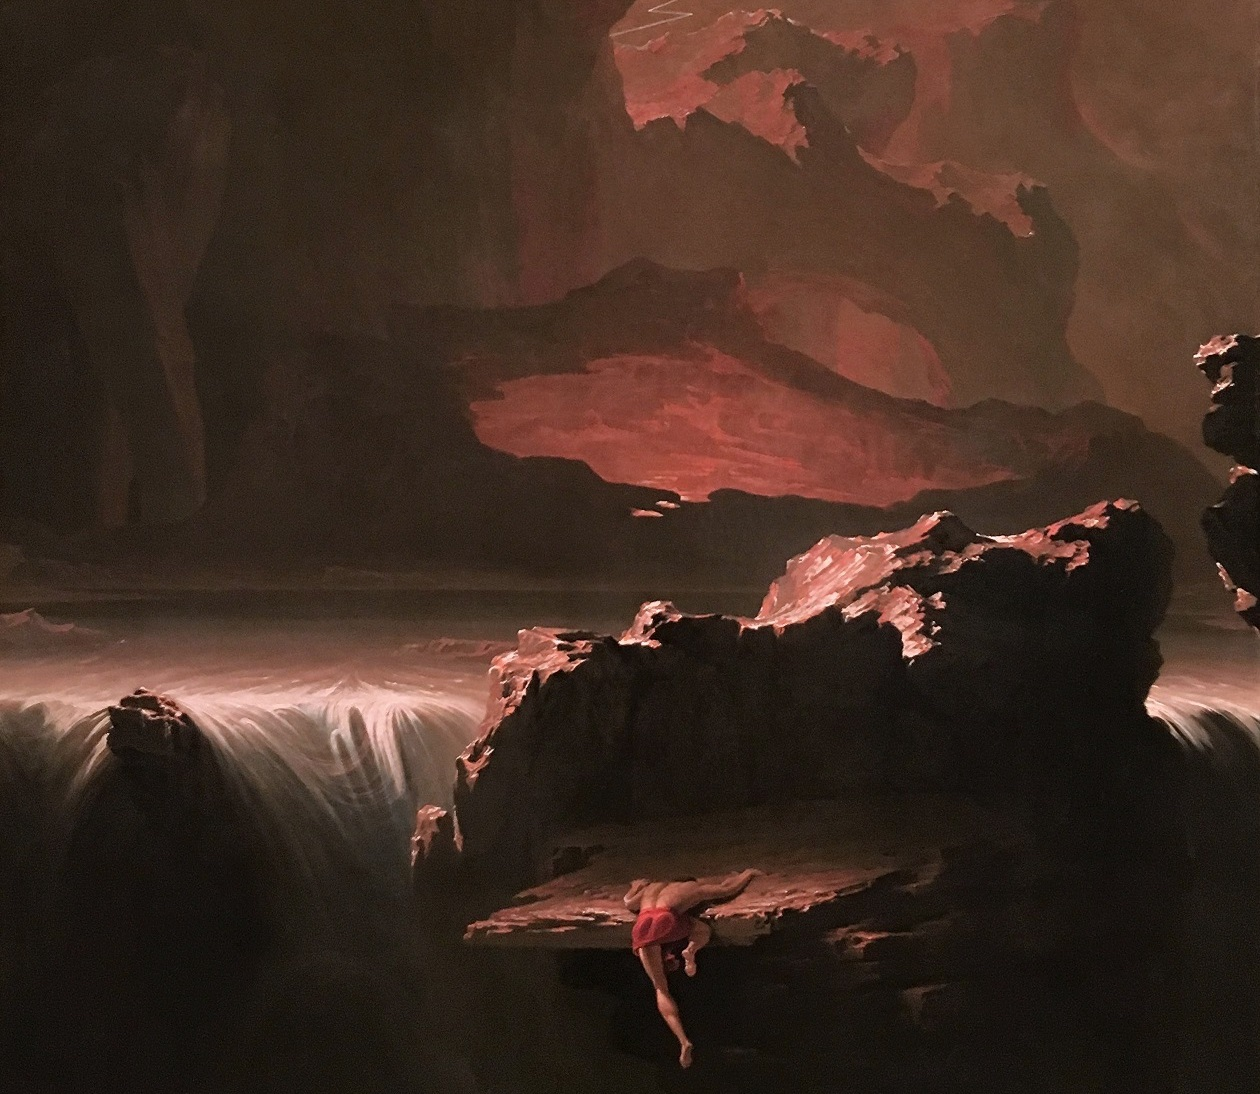 Romantic-era John Martin painting of a figure climbing an enormous mountain